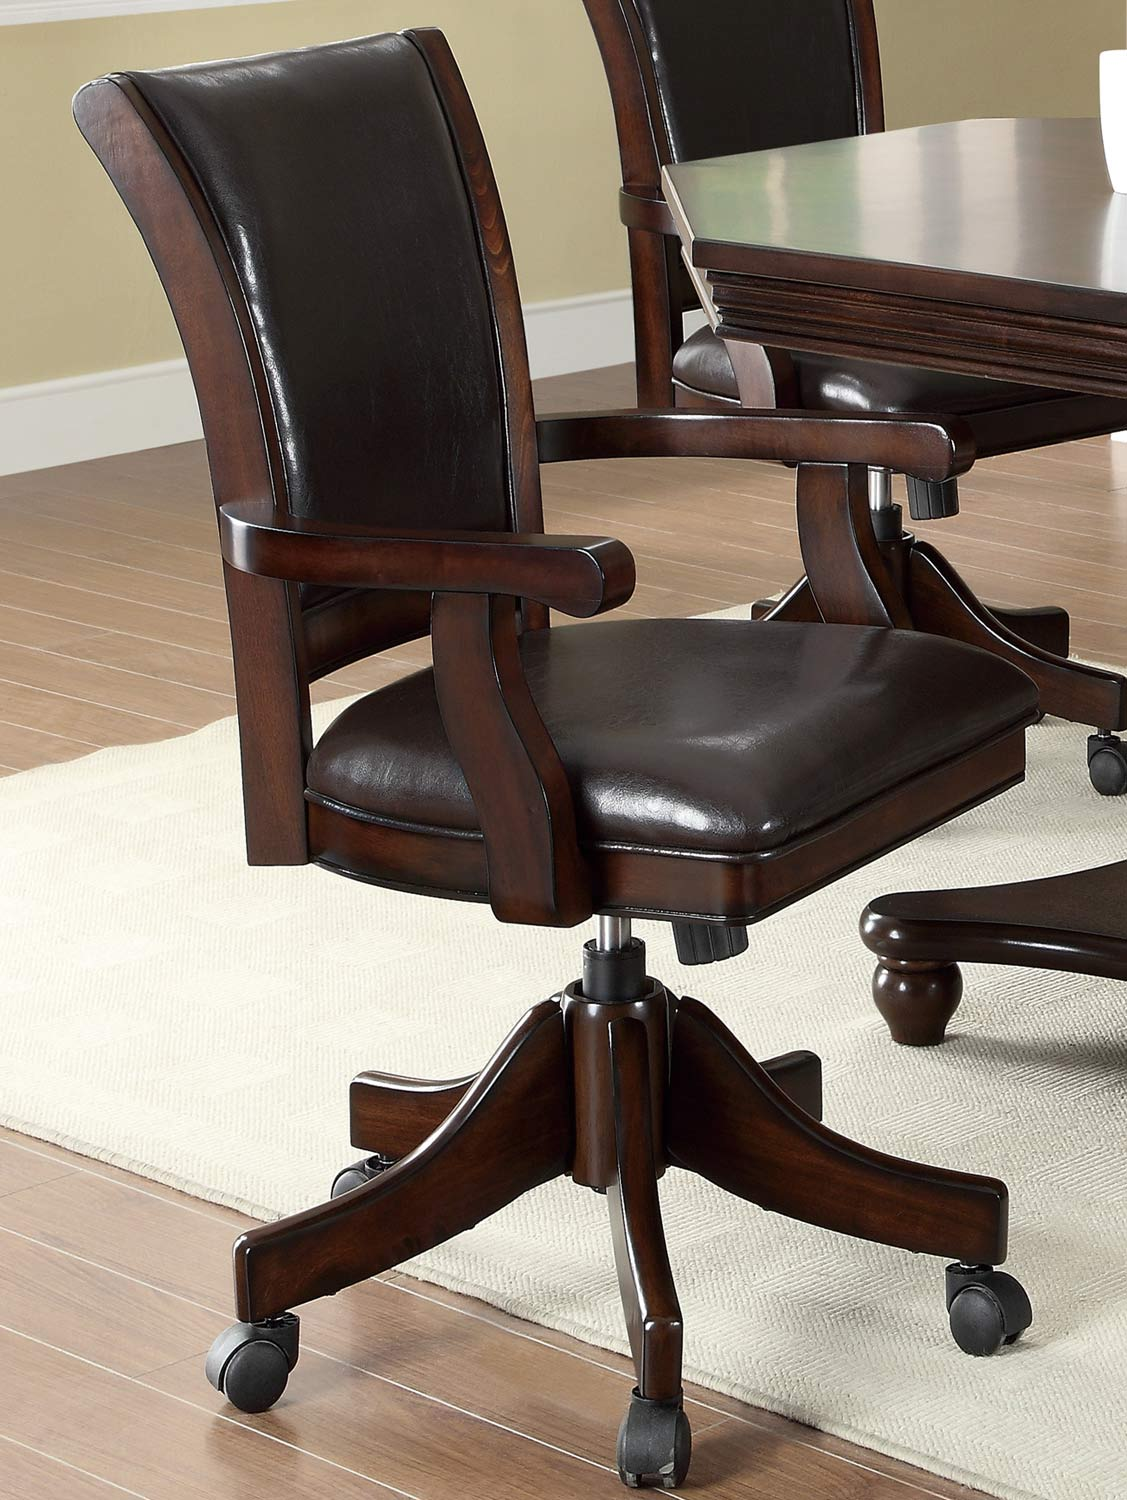 Coaster 100883 Game Chair - Mahogany